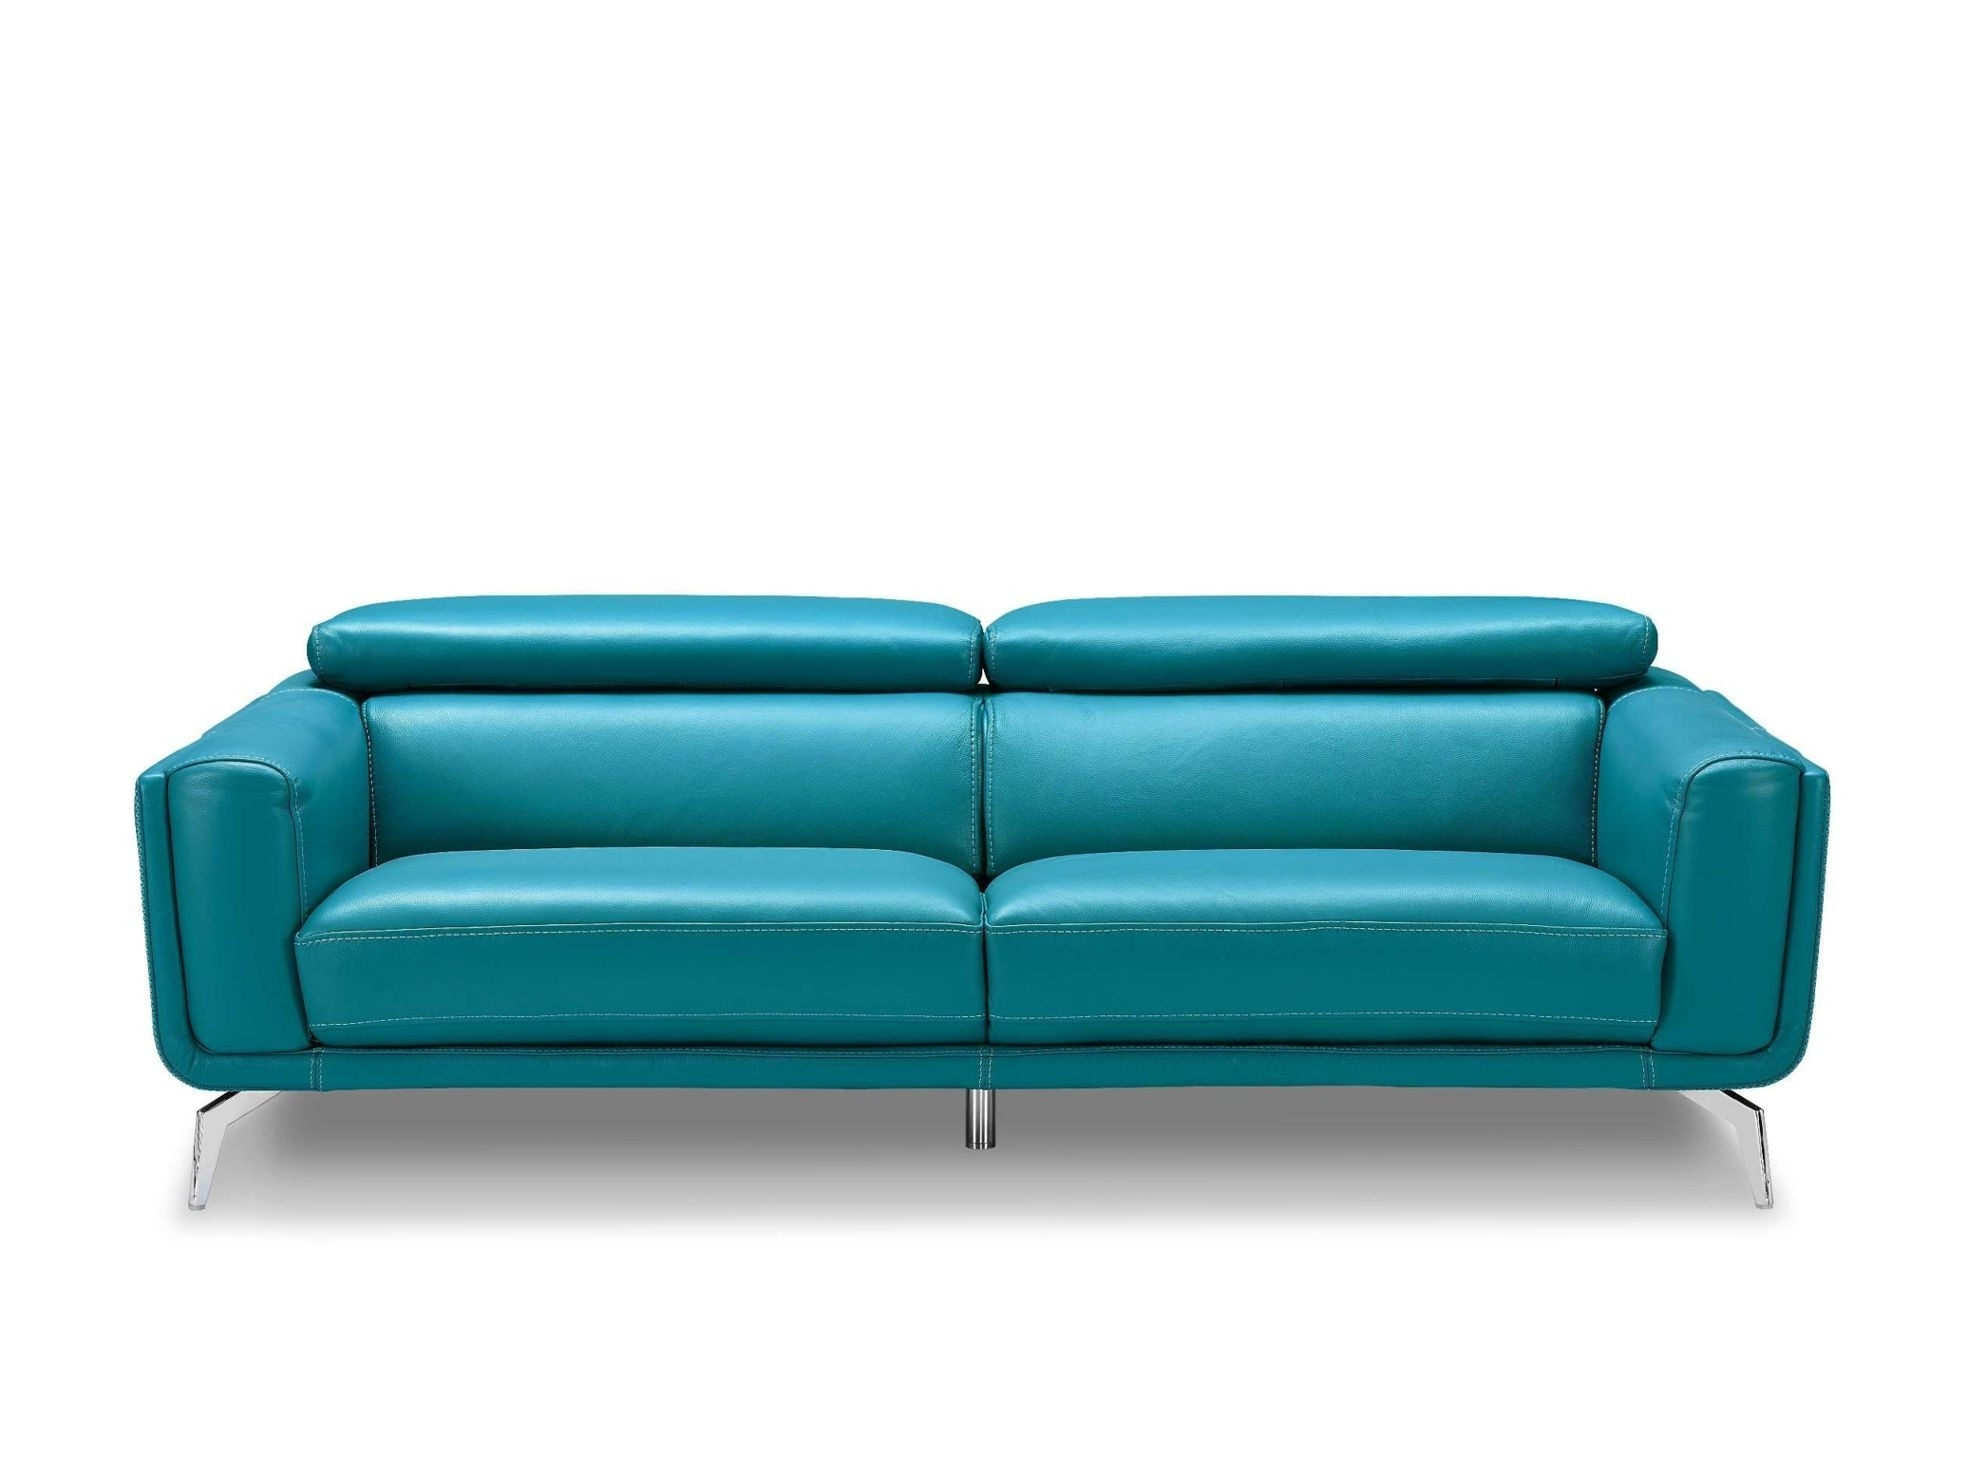 Contemporary Sofa Chairs For Widely Used Contemporary Sofas And Chairs Tags : Modern Sofa Recliner Modern (View 13 of 15)